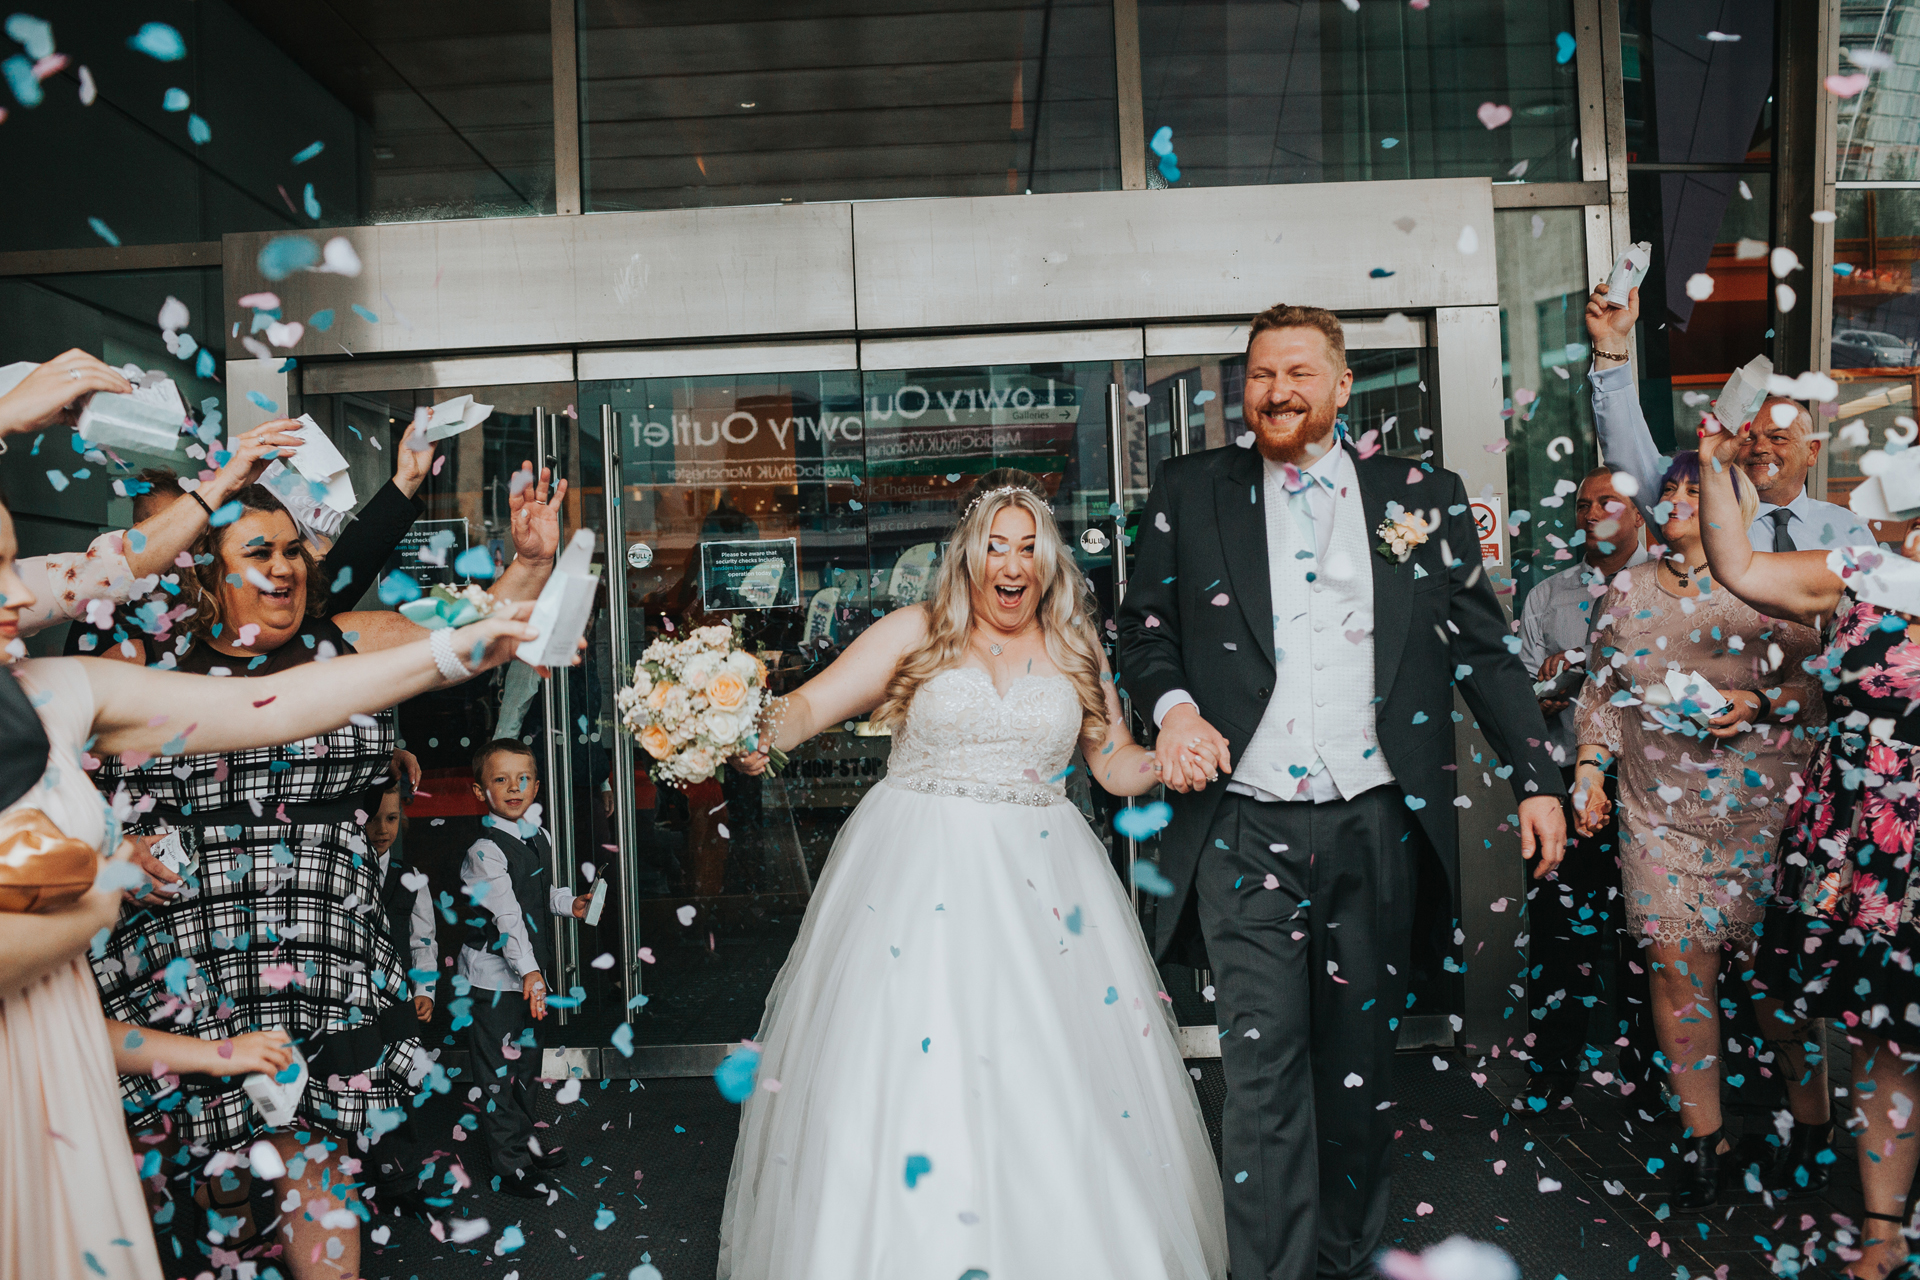 Bride and Groom exit the Lowry Theatre to have confetti thrown at them by wedding guests.